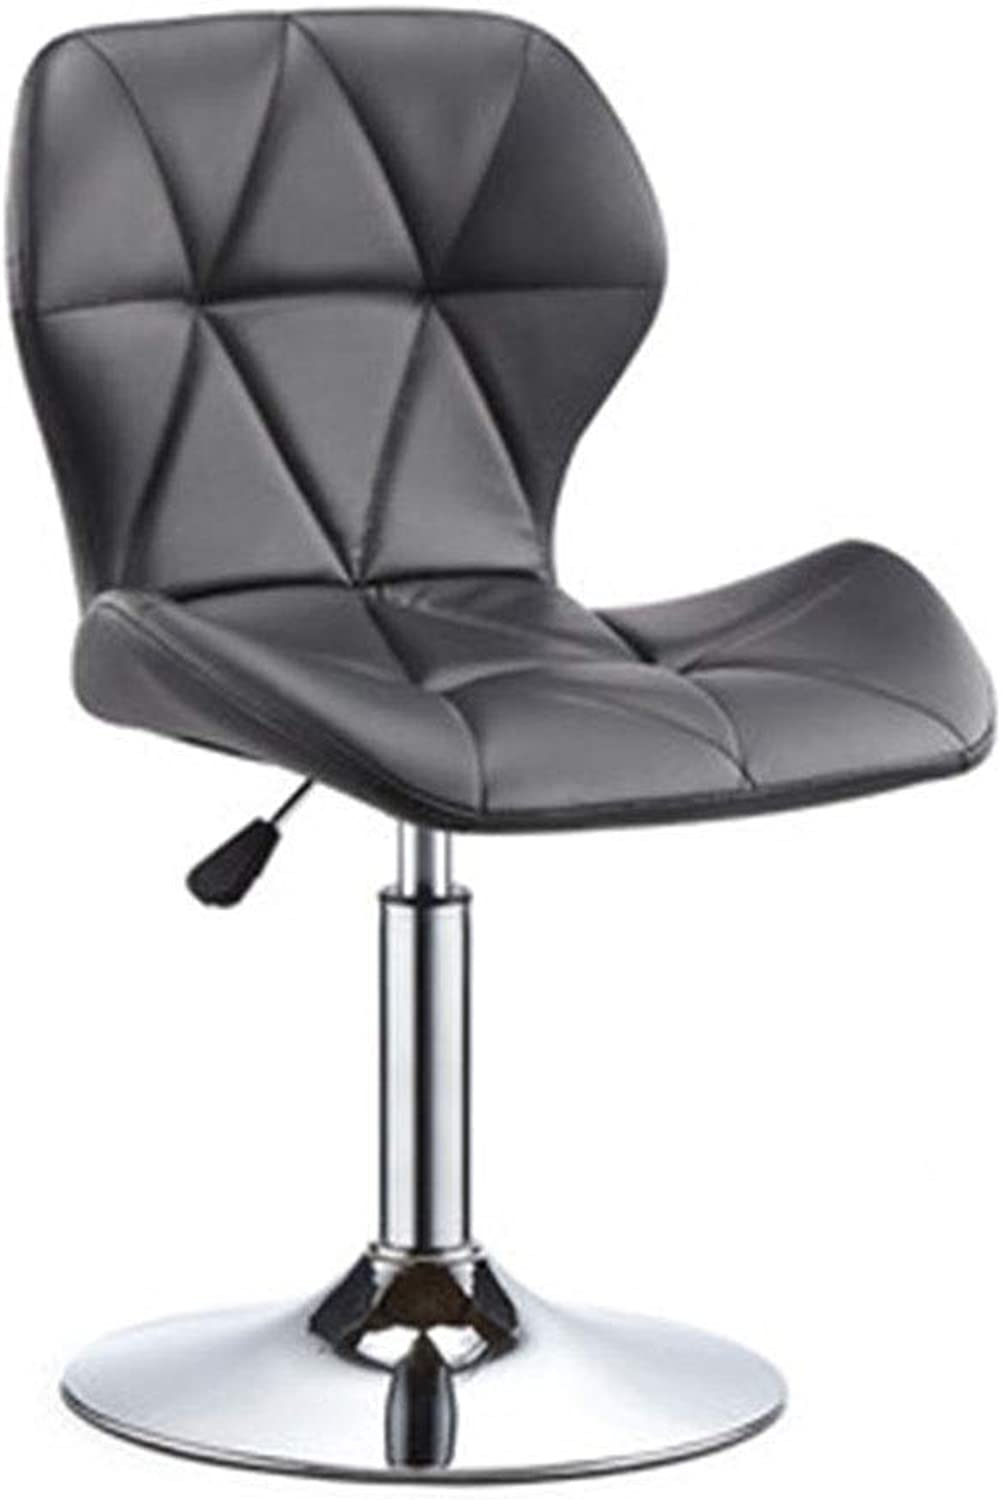 Bar Chair Chair Lift Simple High Stool redate Chair Household Bar Stool 3 colors 1 Size (color   Black)